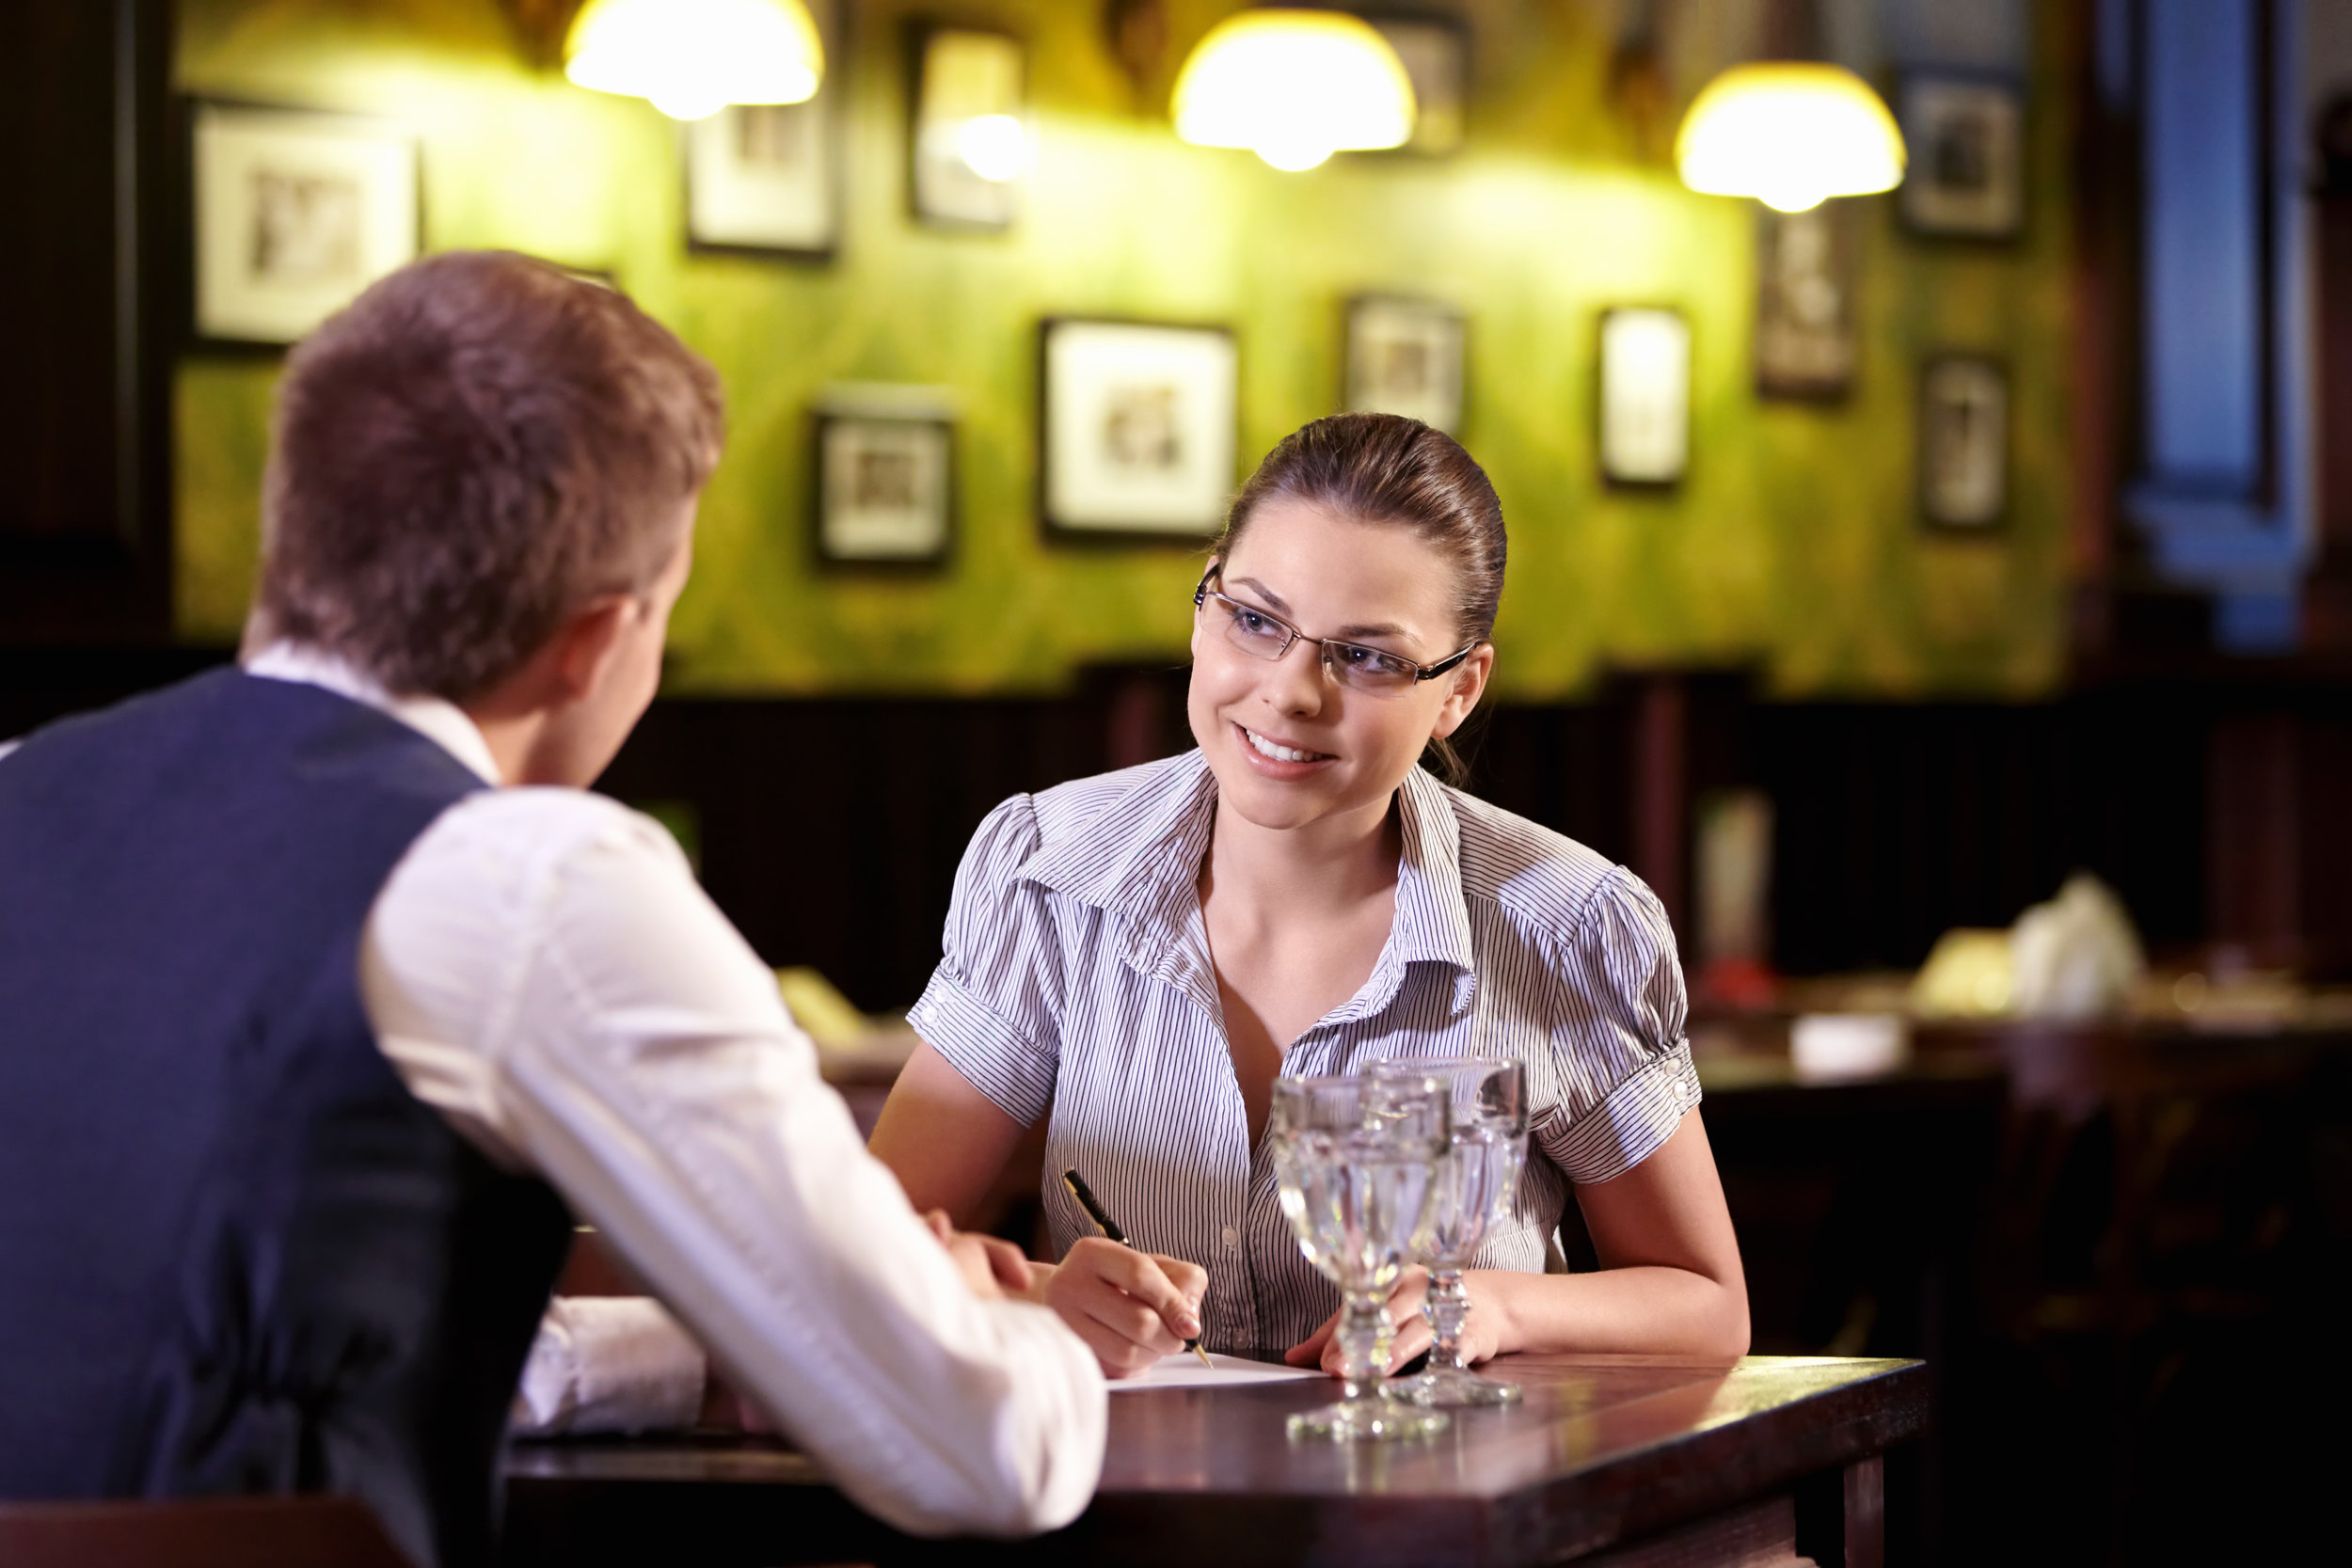 Boost restaurant sales by hiring great sales people.